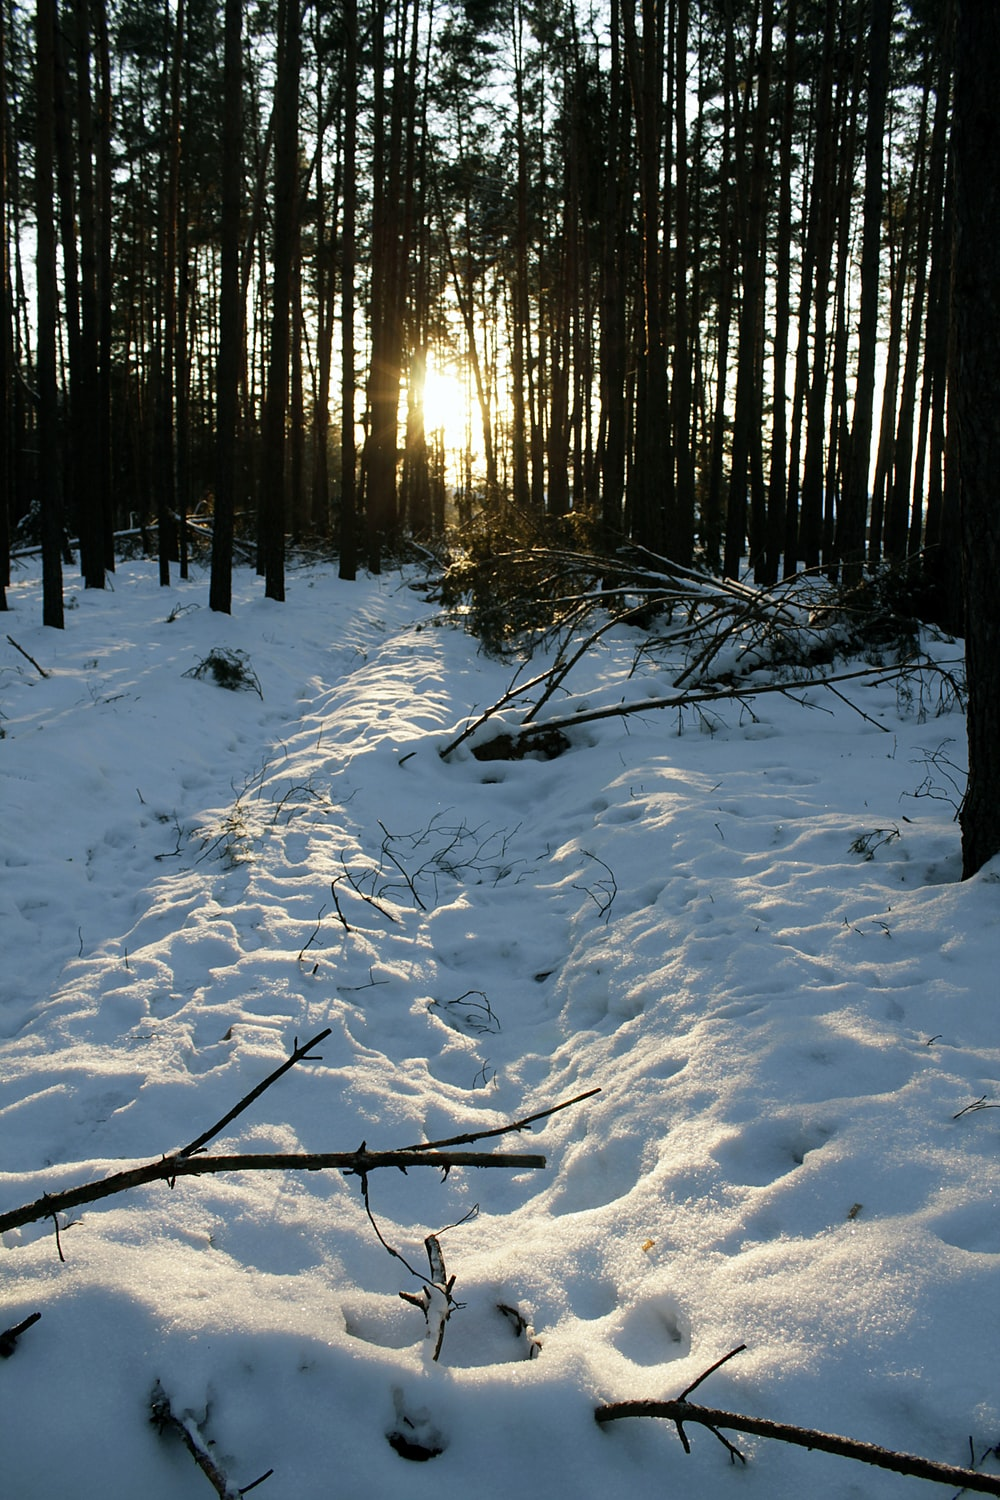 trees in snow forest